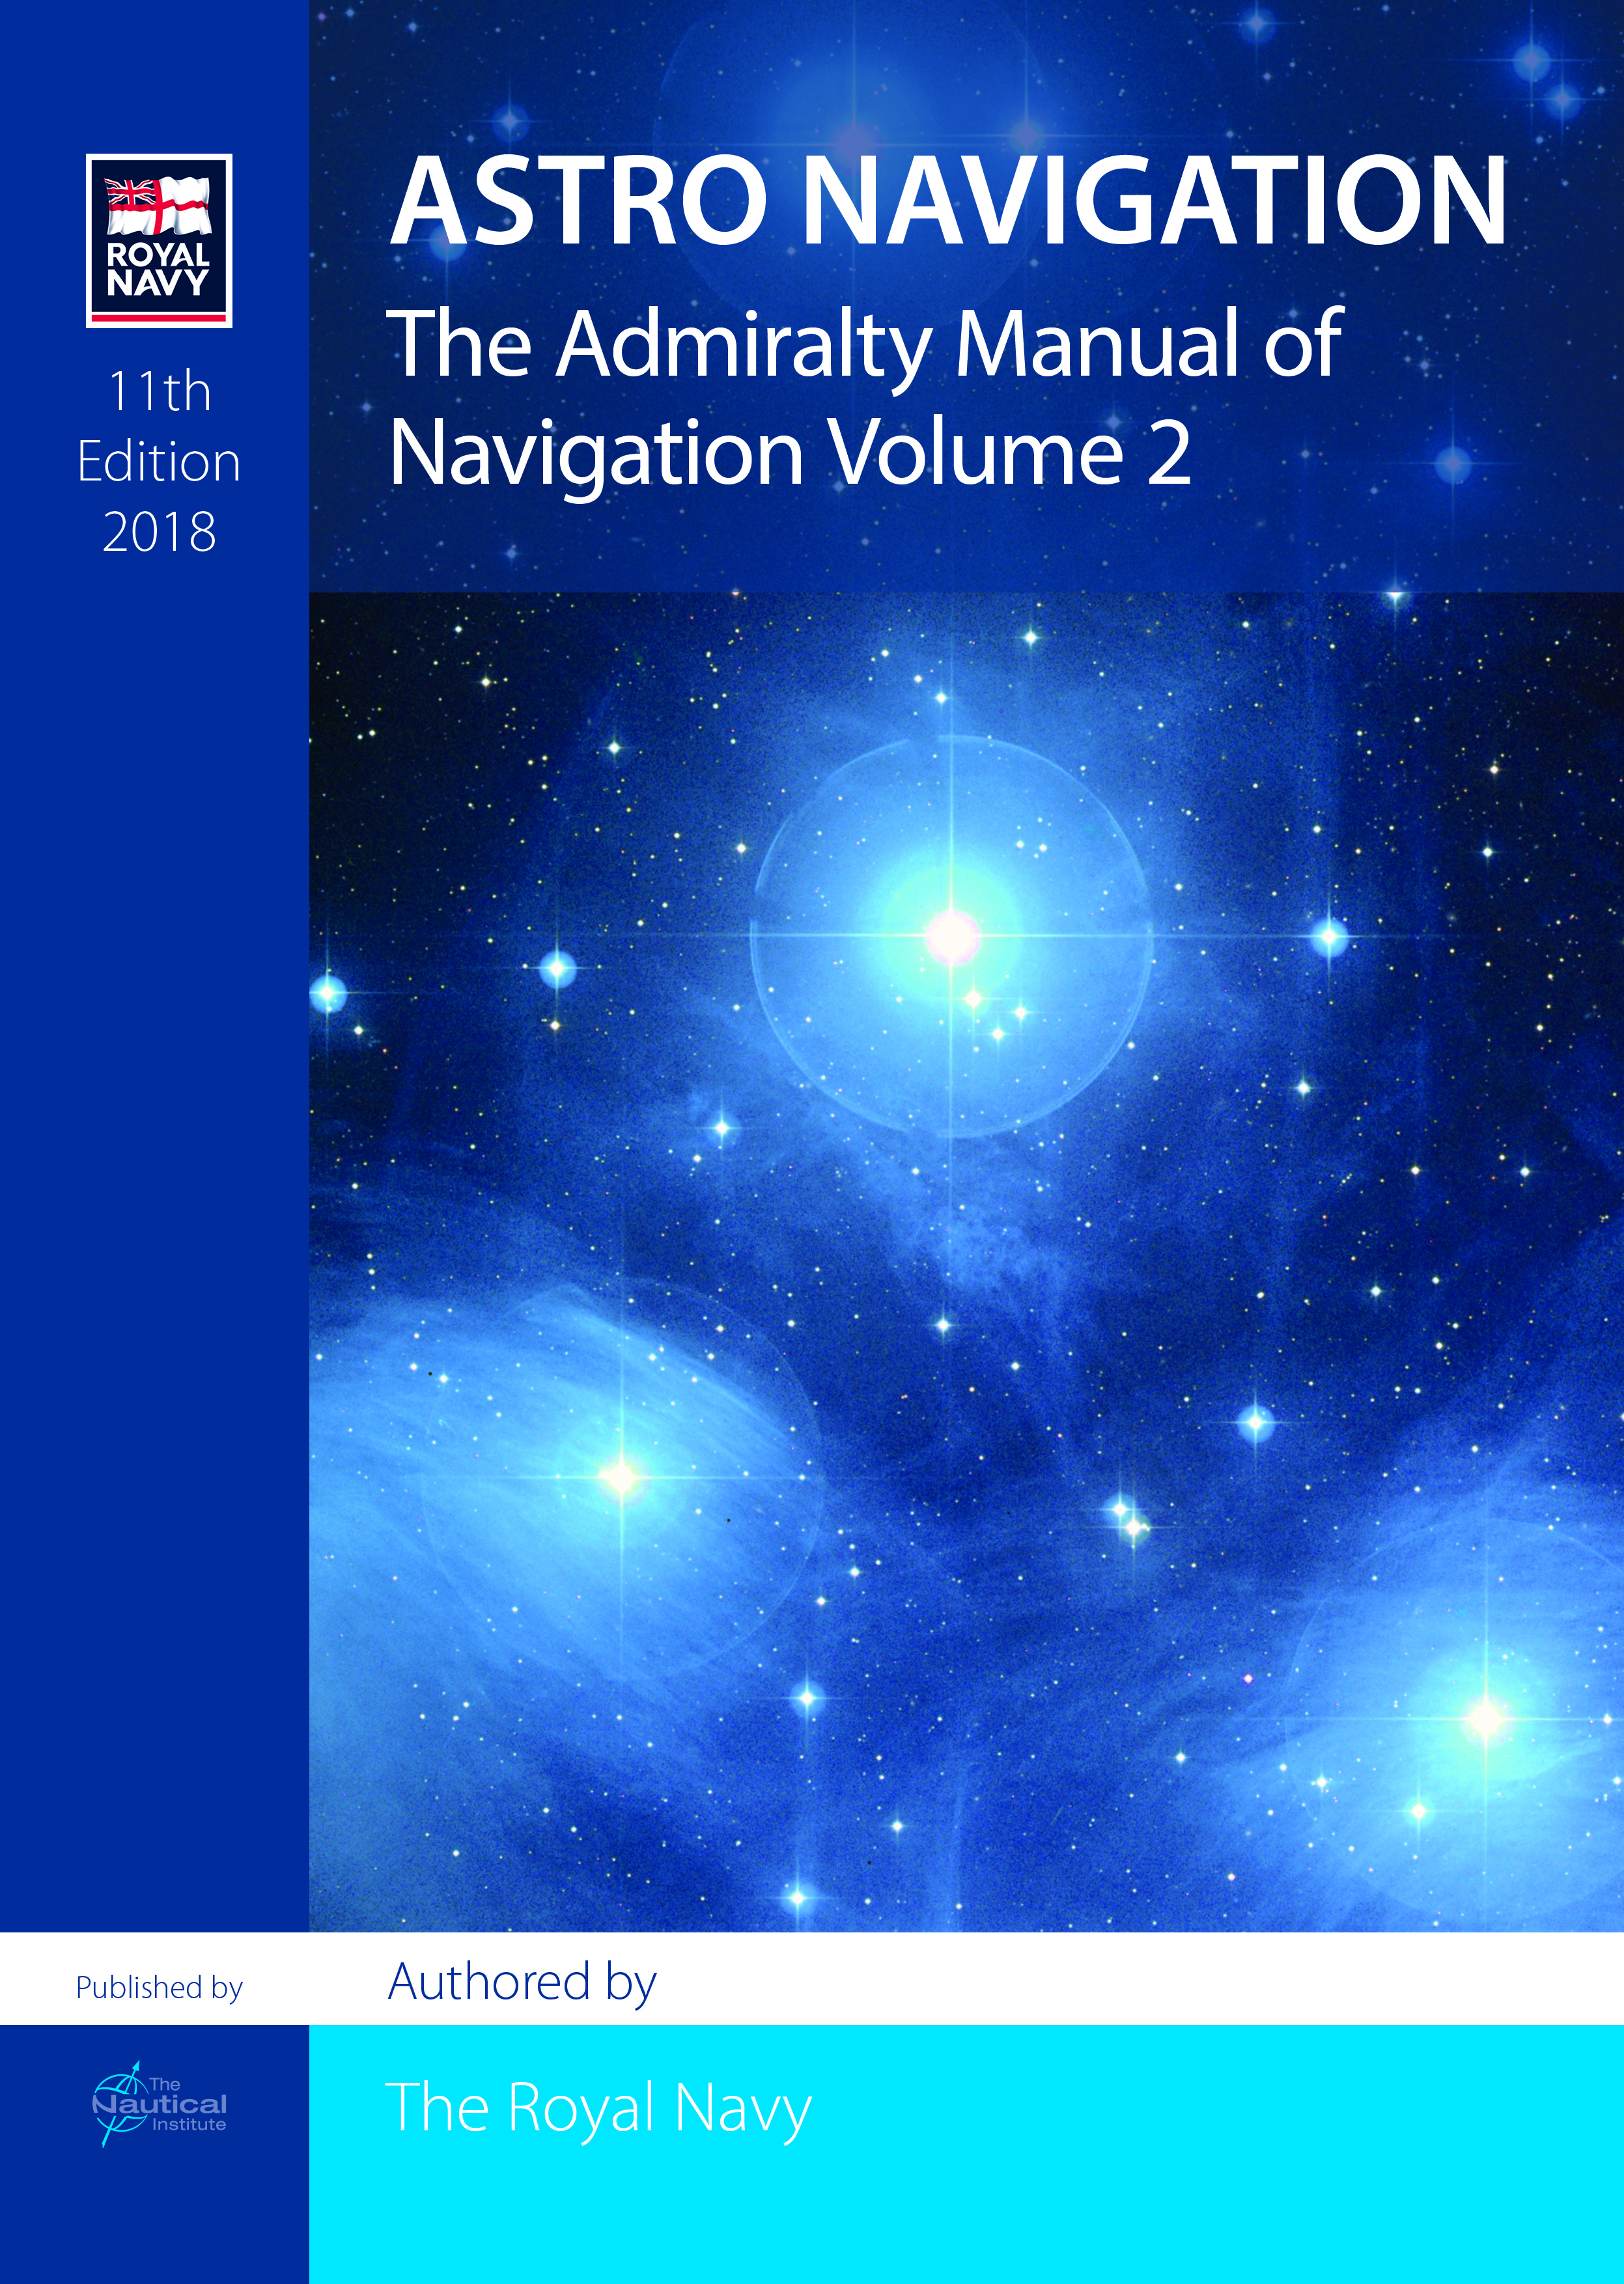 The Admiralty Manual of Navigation, Vol. 2 Astro Navigation